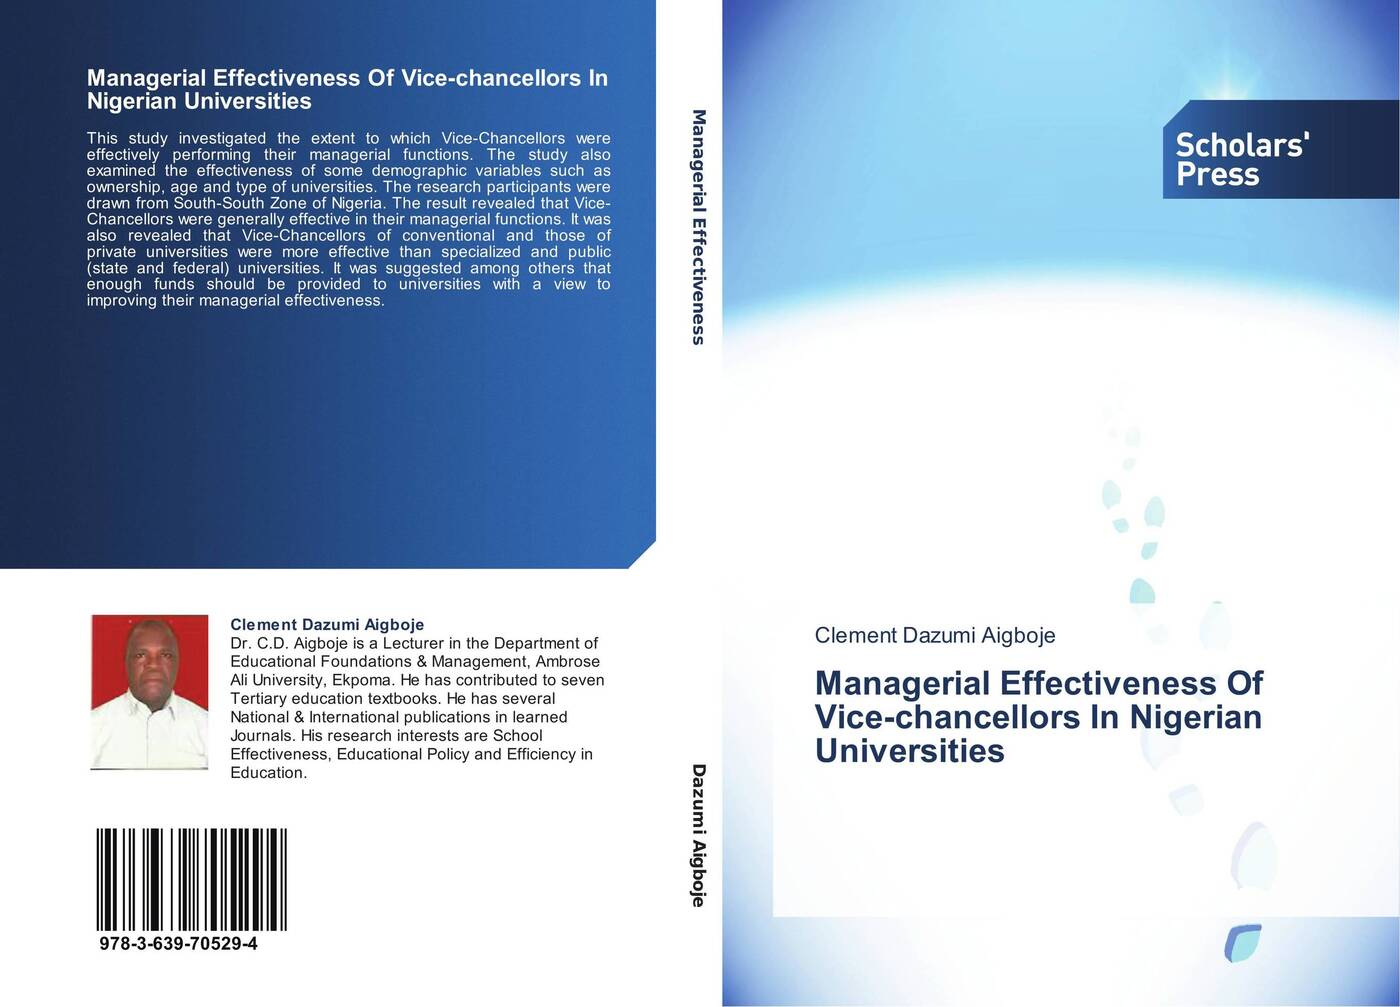 Clement Dazumi Aigboje Managerial Effectiveness Of Vice-chancellors In Nigerian Universities dynamics of managerial effectiveness